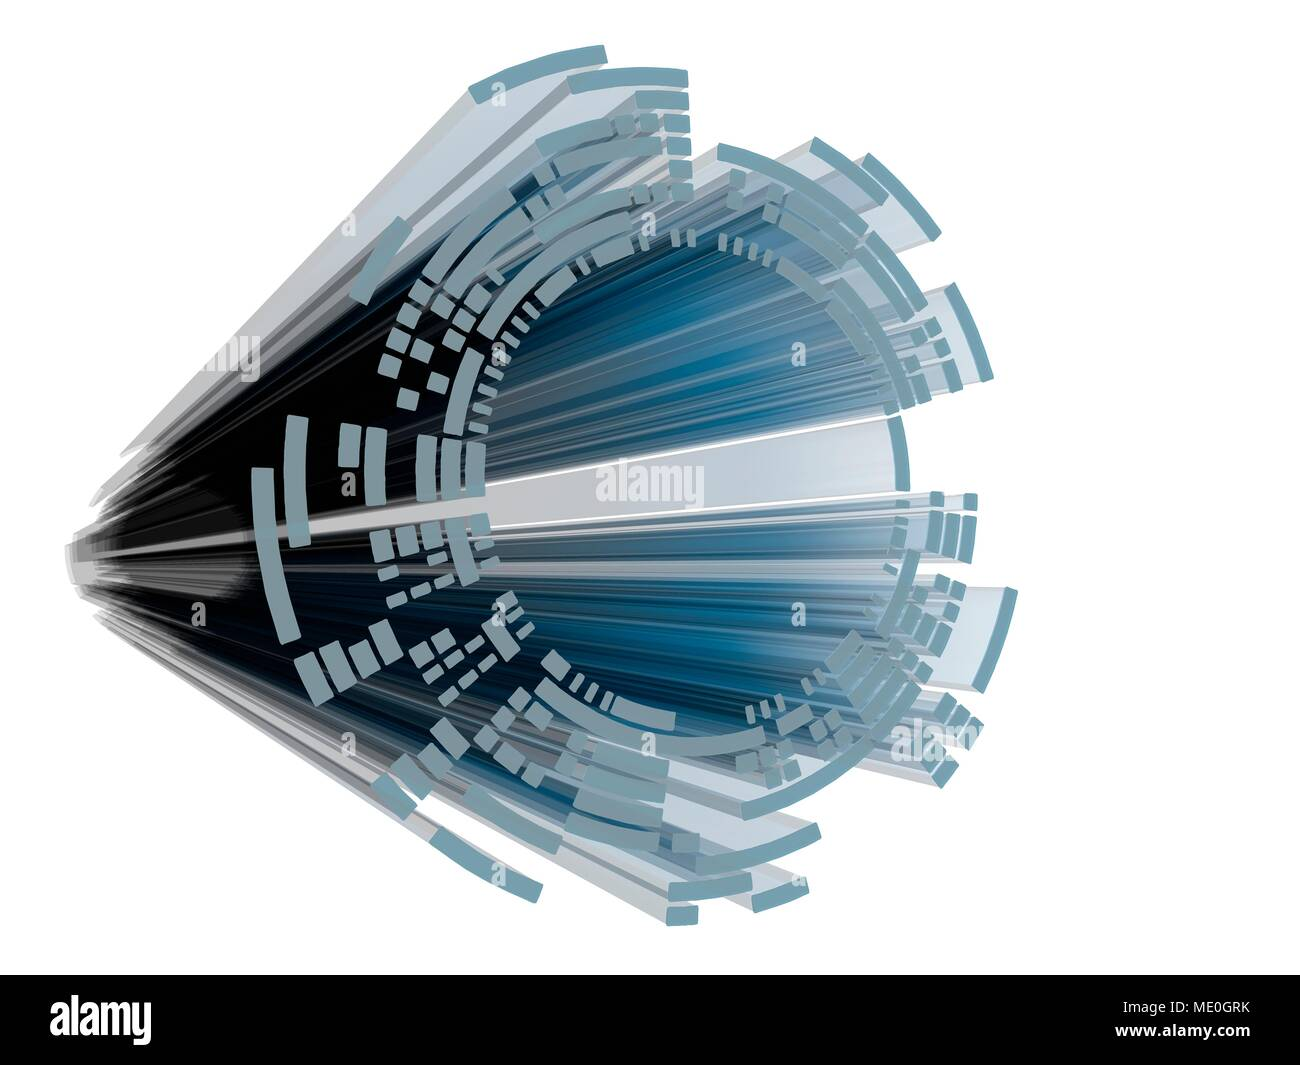 Abstract circular display element for user interfaces, HUD, diagrams and sci-fi. - Stock Image